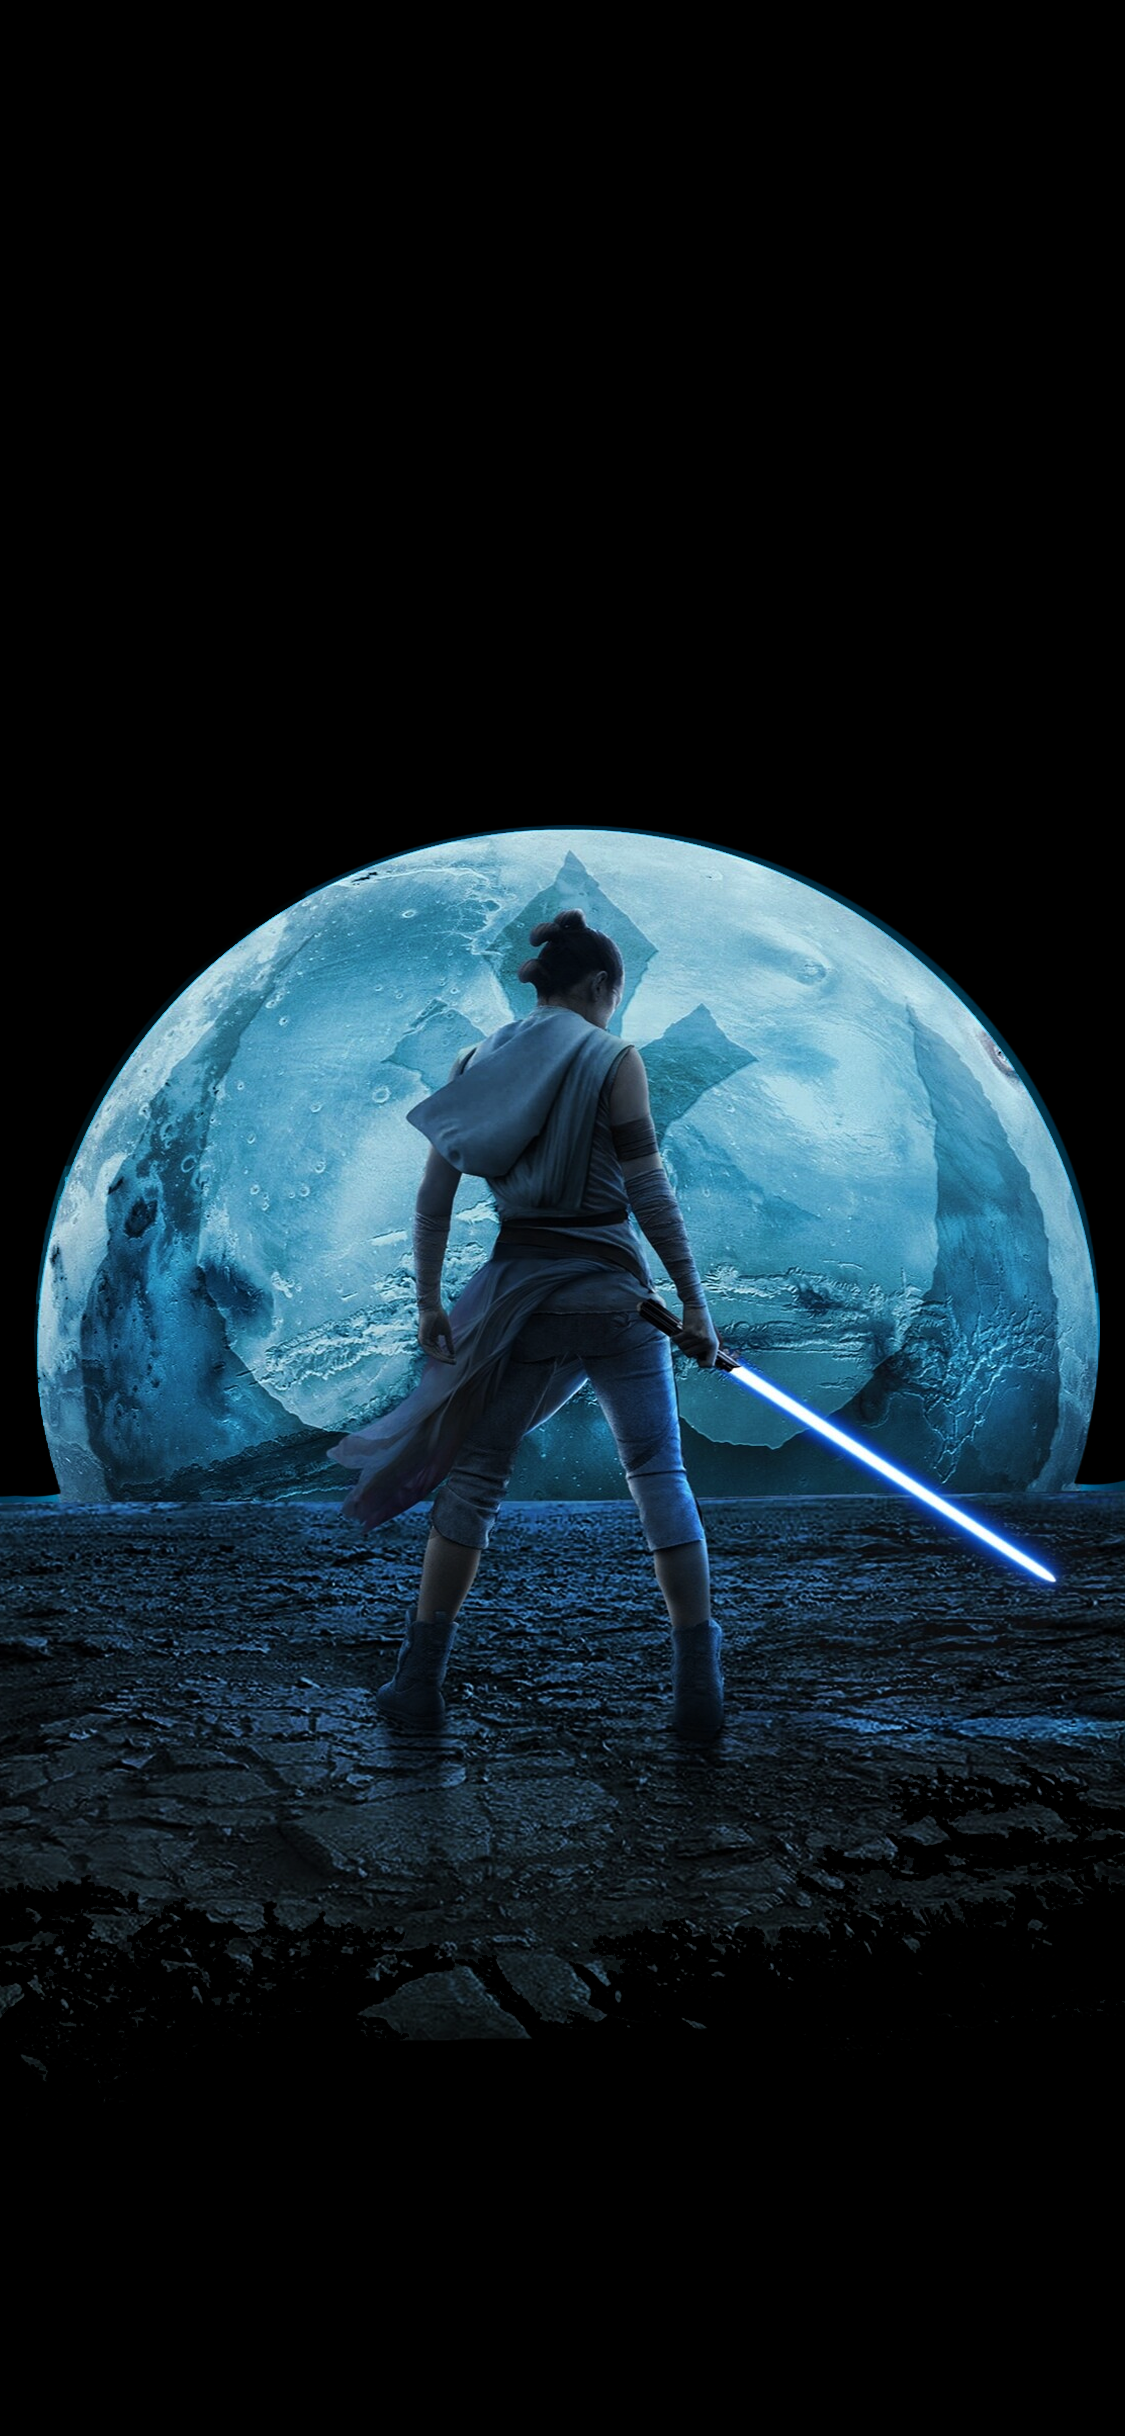 Star Wars The Rise Of Skywalker Iphone Hd Wallpapers Wallpaper Cave